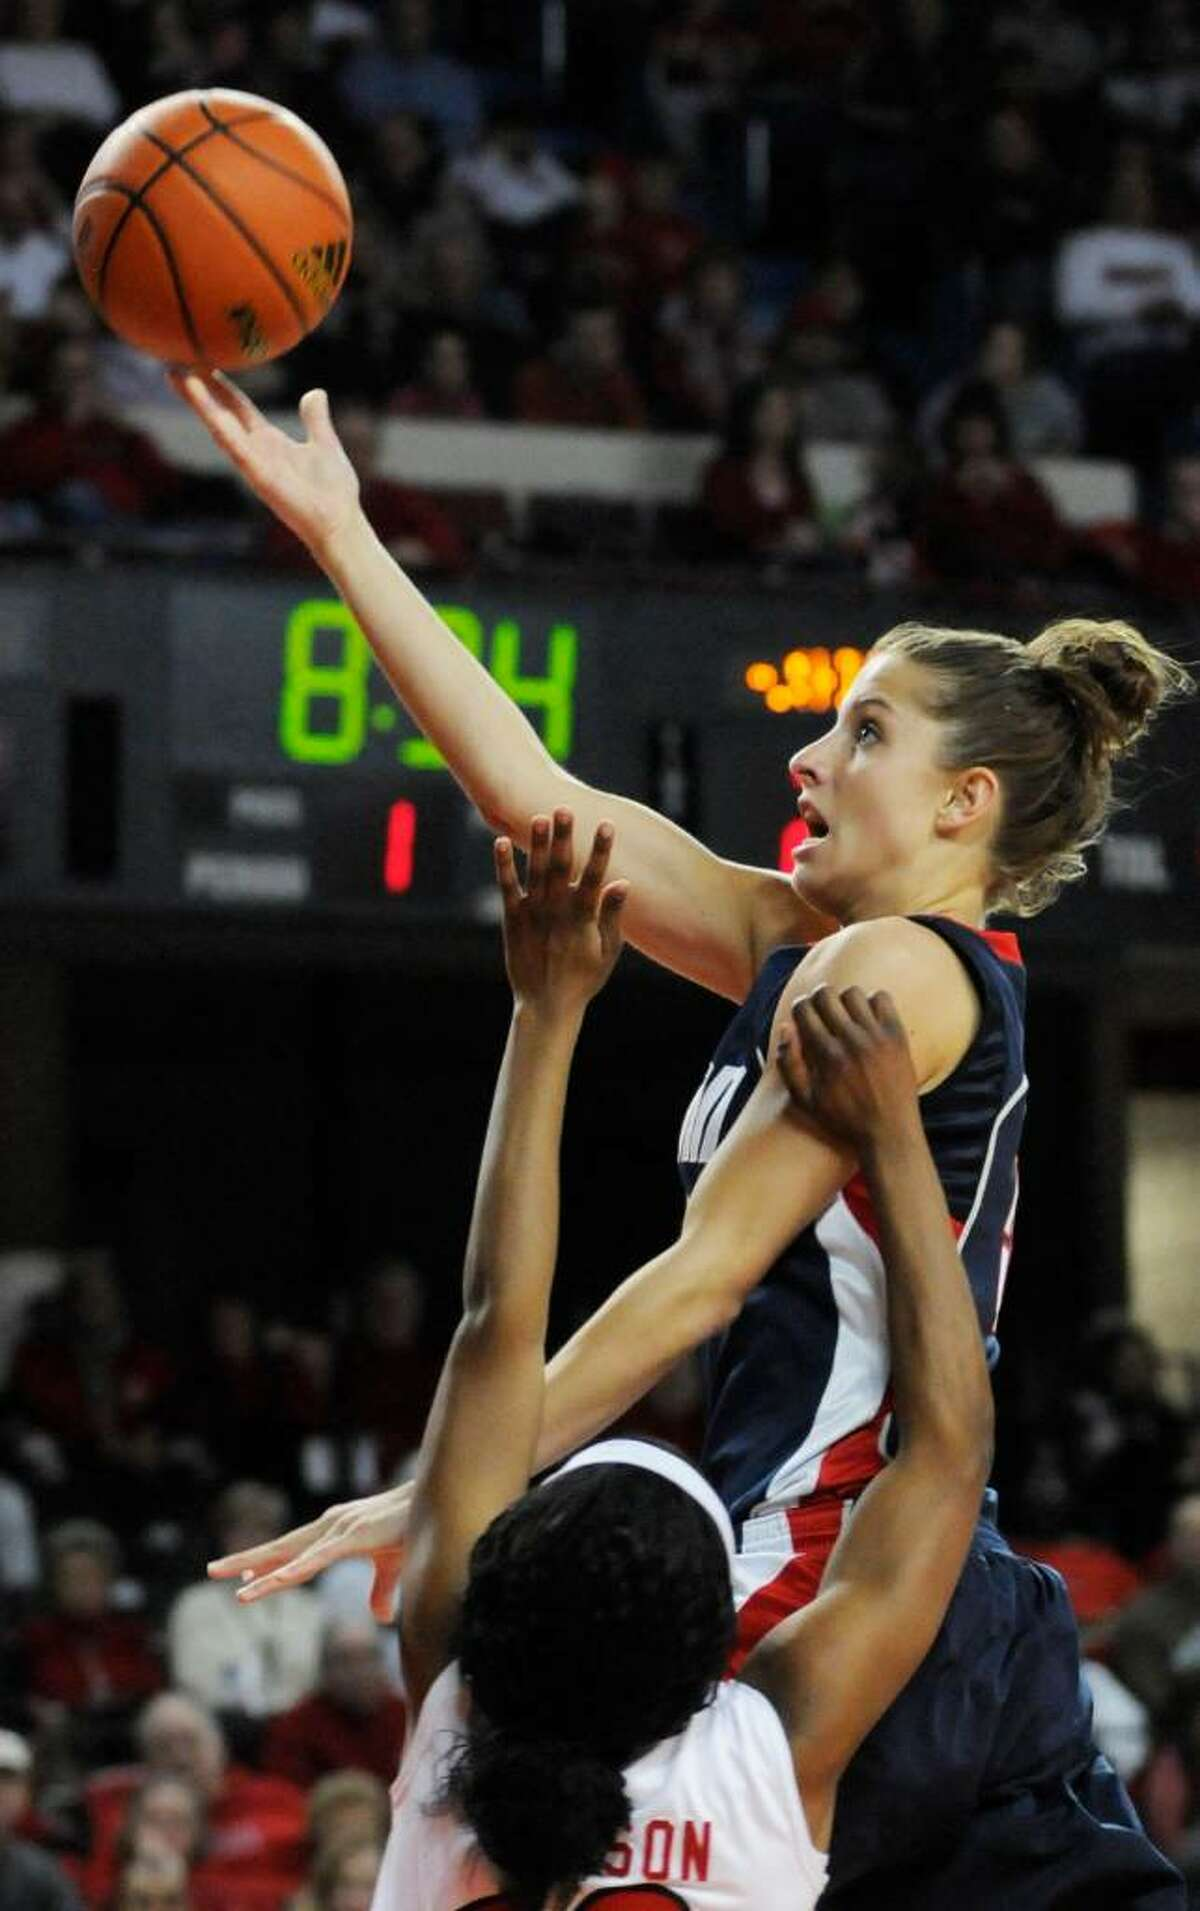 Connecticut's Caroline Doty, top, drives past the defense of Louisville's LaToya Johnson for a layup during the first half of their NCAA college basketball game Sunday, Feb. 7, 2010, in Louisville, Ky. Connecticut defeated Louisville 84-38. (AP Photo/Timothy D. Easley)